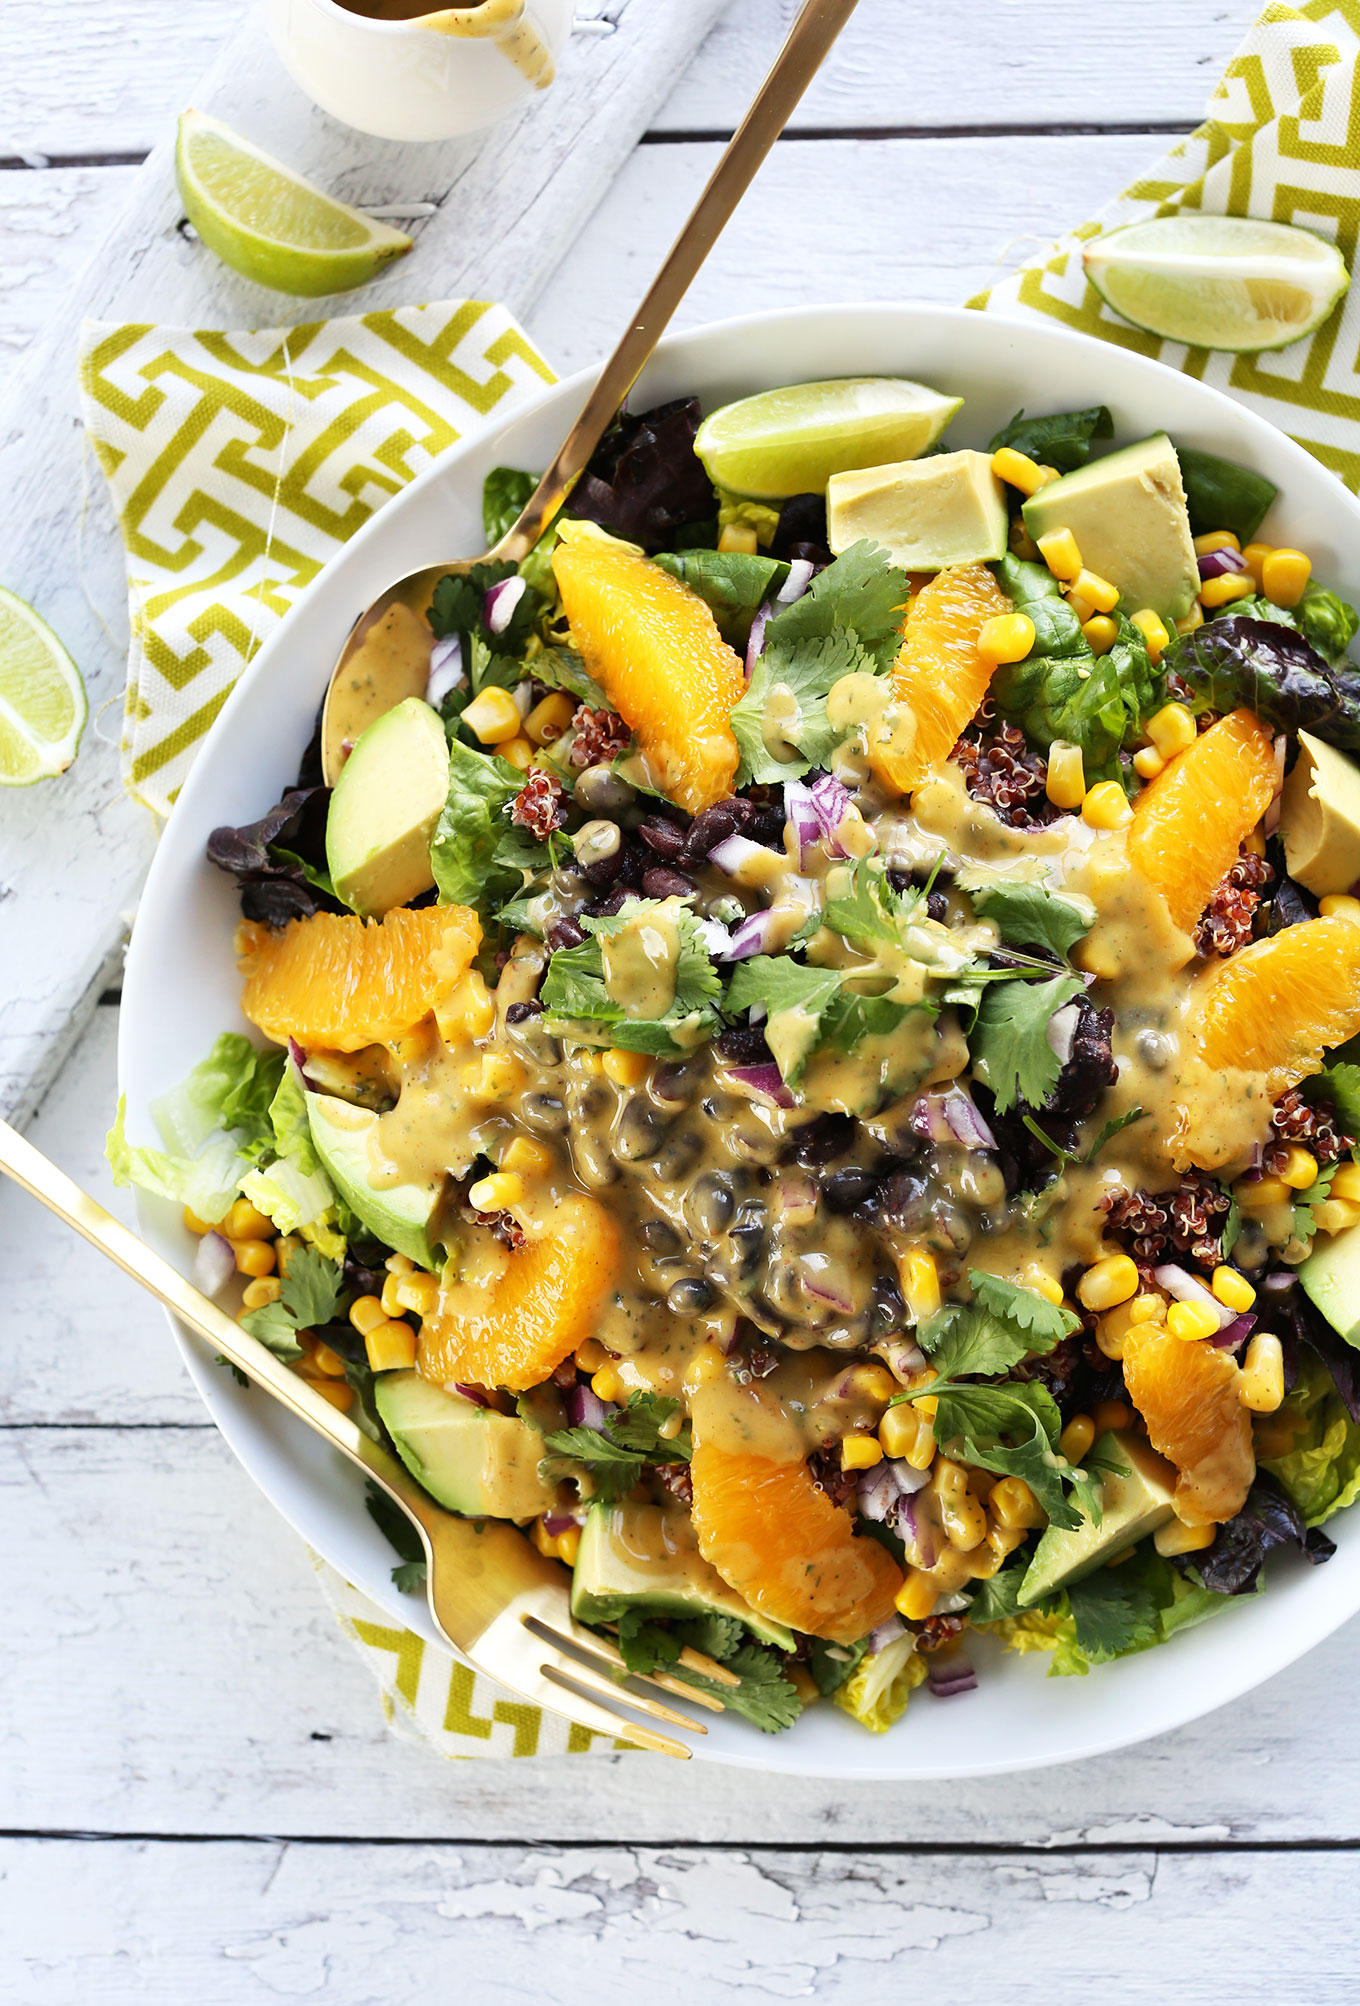 HEALTHY-Vegan-Mexican-Quinoa-Salad-with-Black-Beans-Corn-Avocado-and-a-Creamy-Orange-Chili-Dressing-vegan-